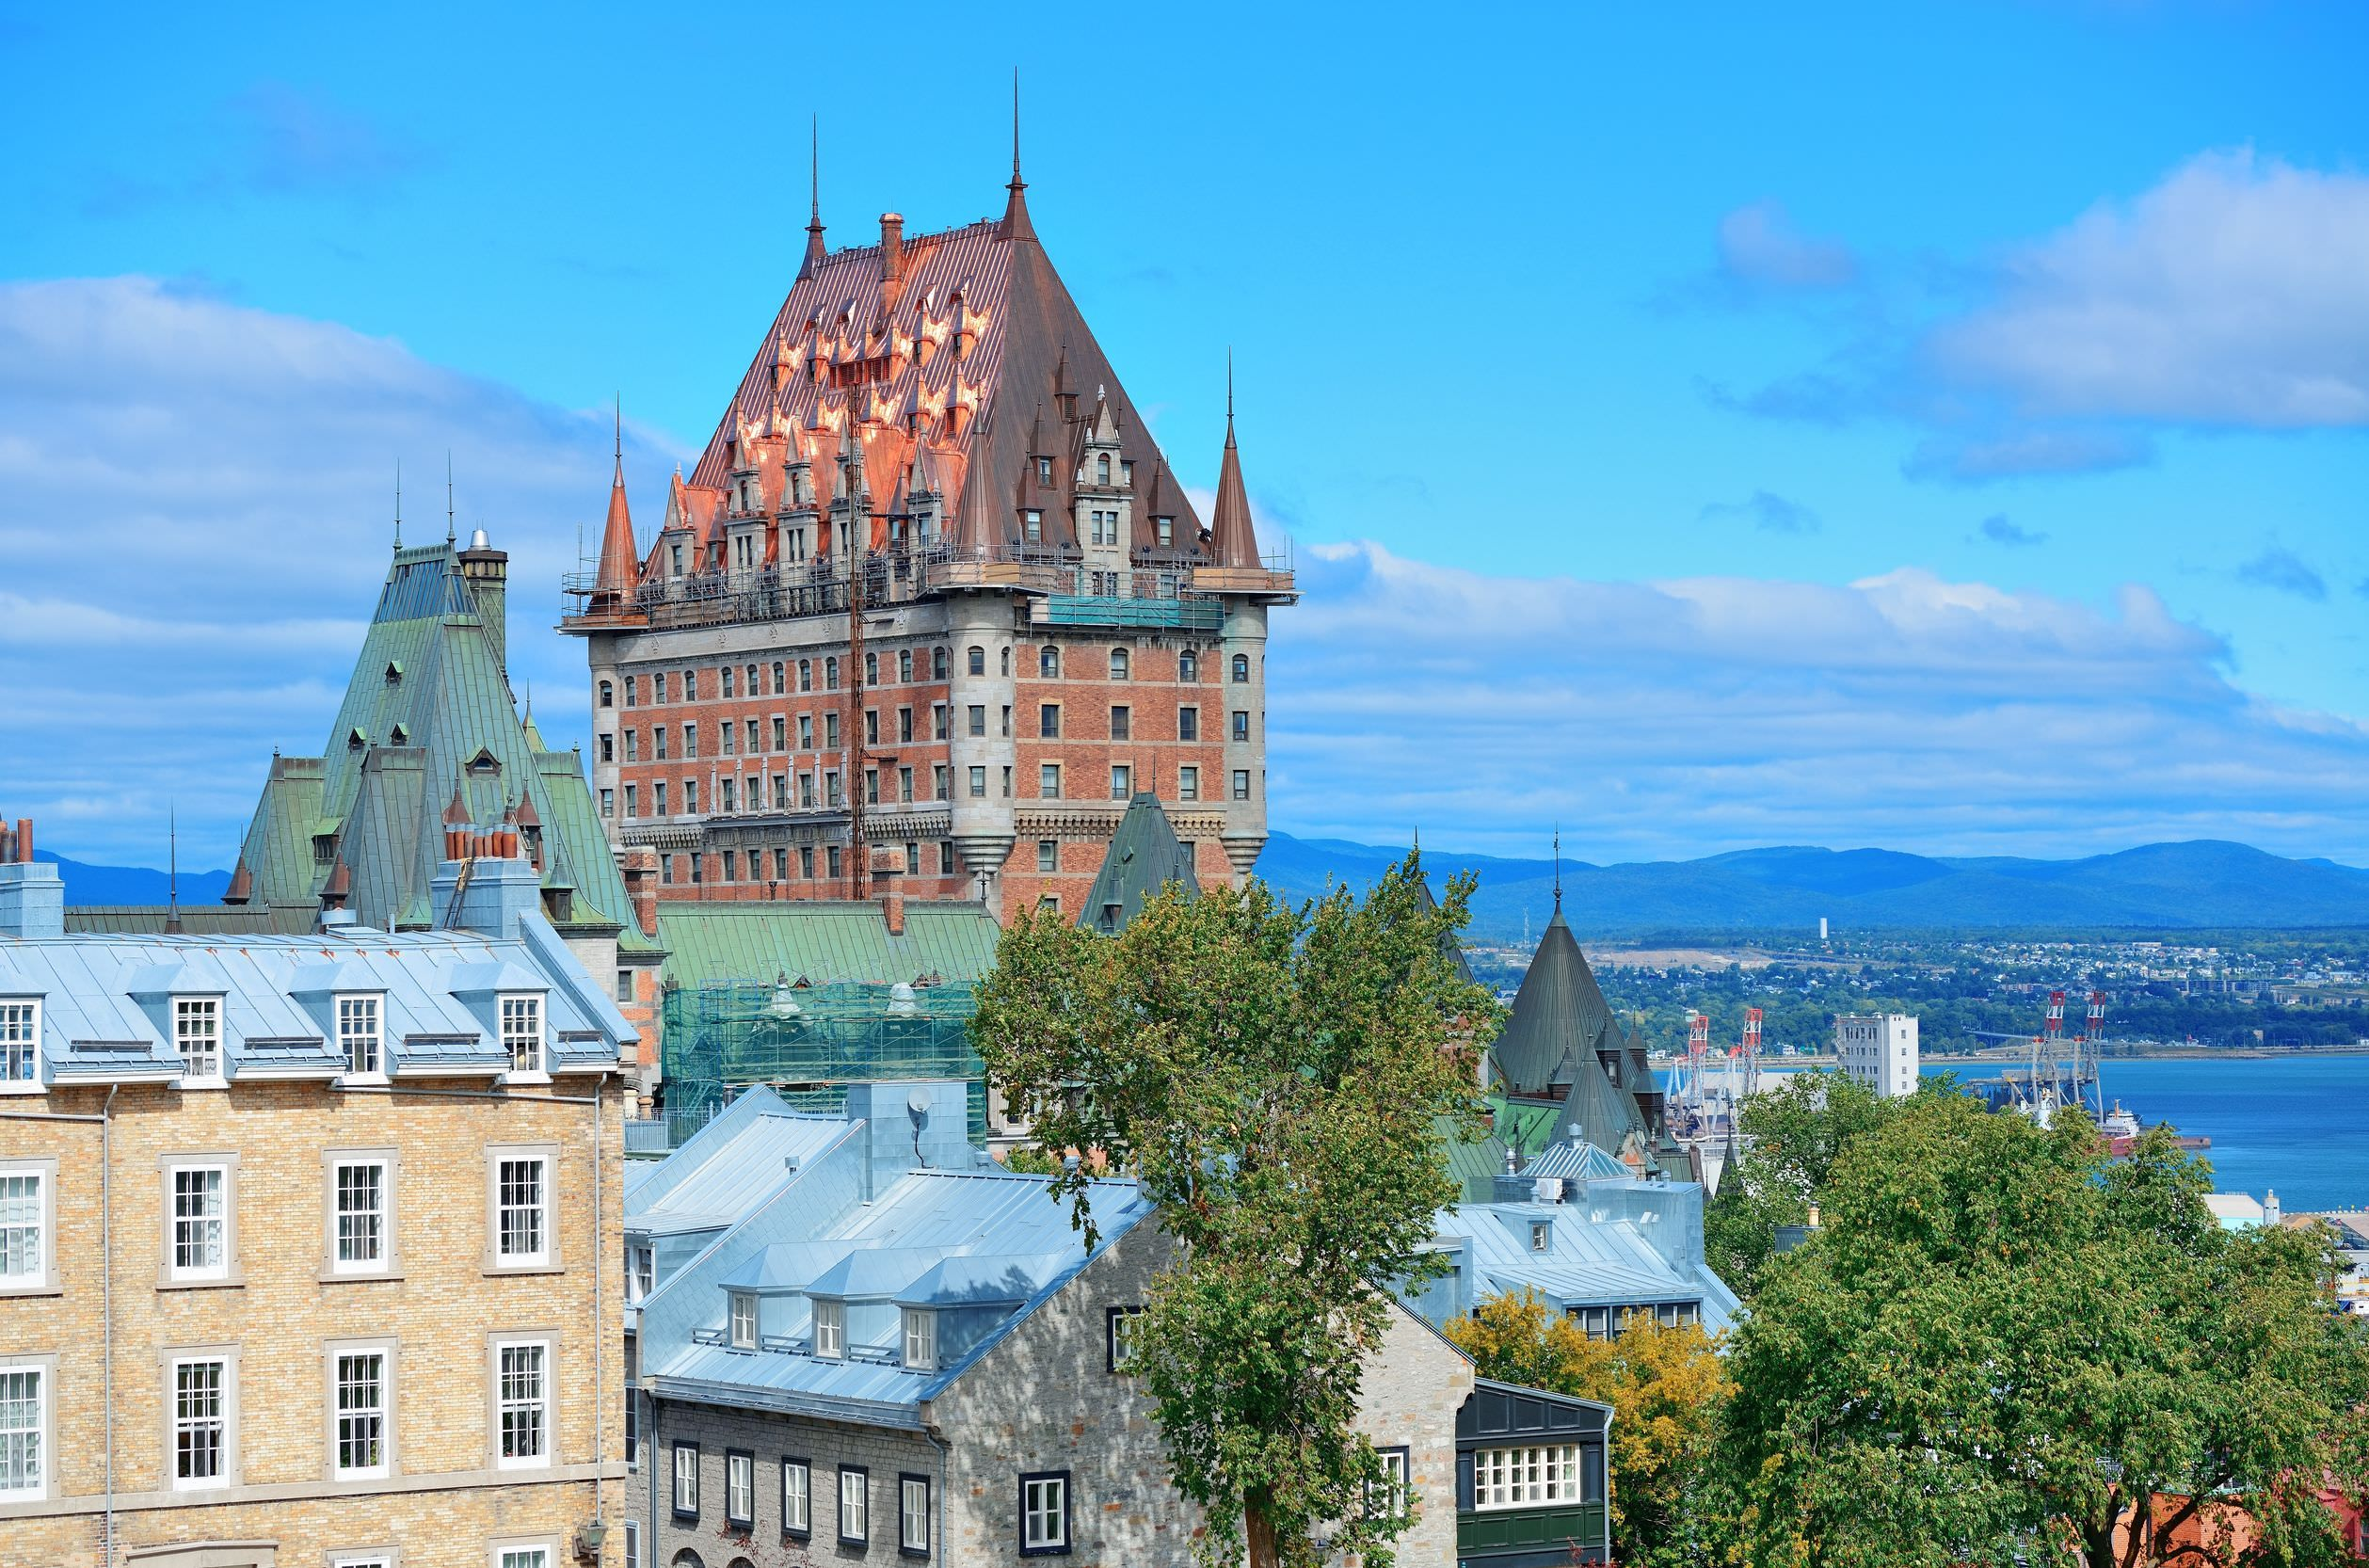 , Quebec taps 6 producers to supply over 60,000 kilograms of recreational cannabis